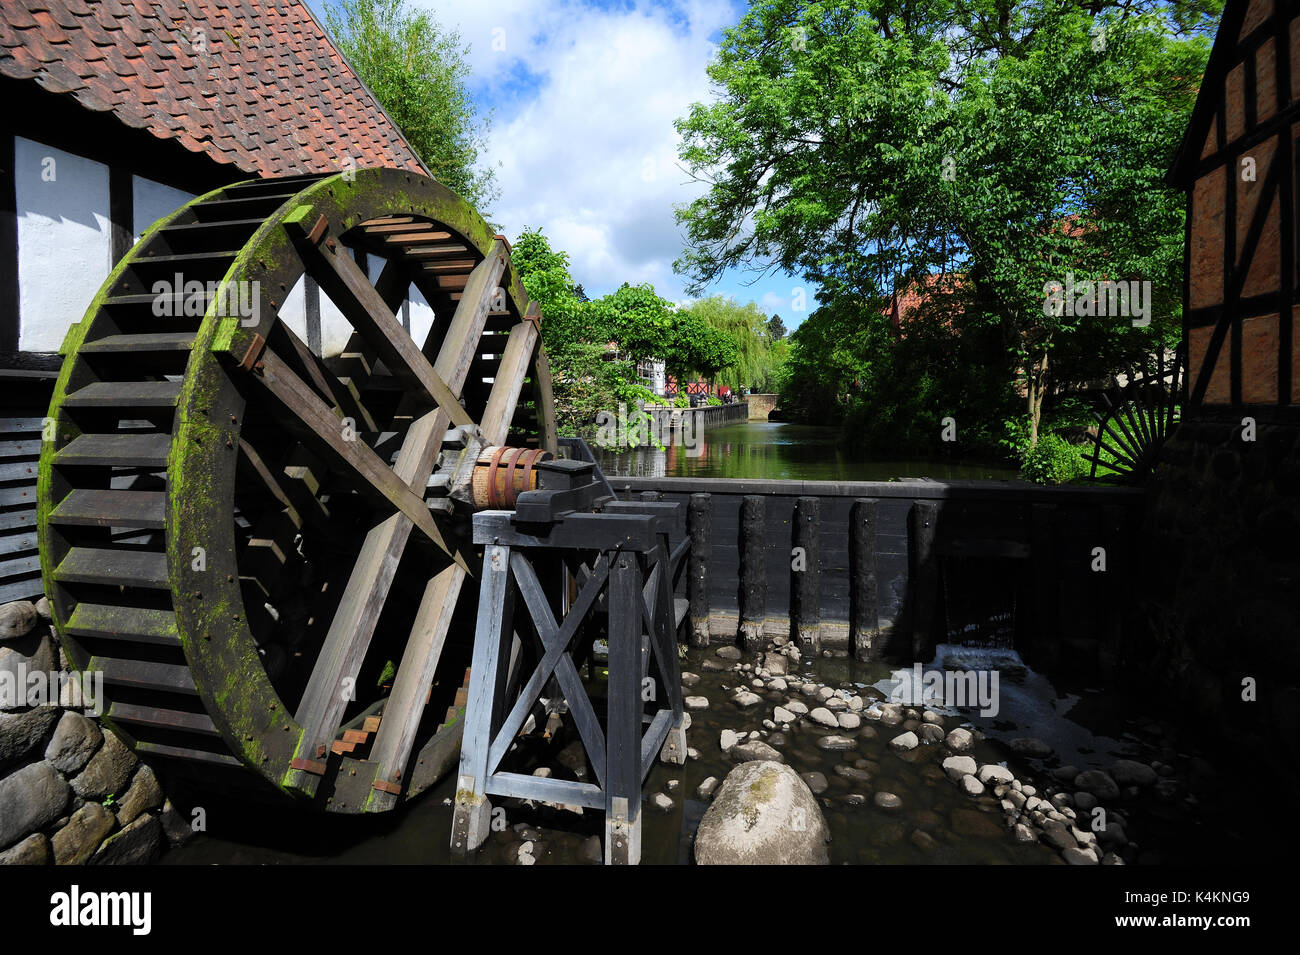 Travel back in time at Den Gamle By (The Old Town), an open-air folk museum in Aarhus, Denmark. Stock Photo